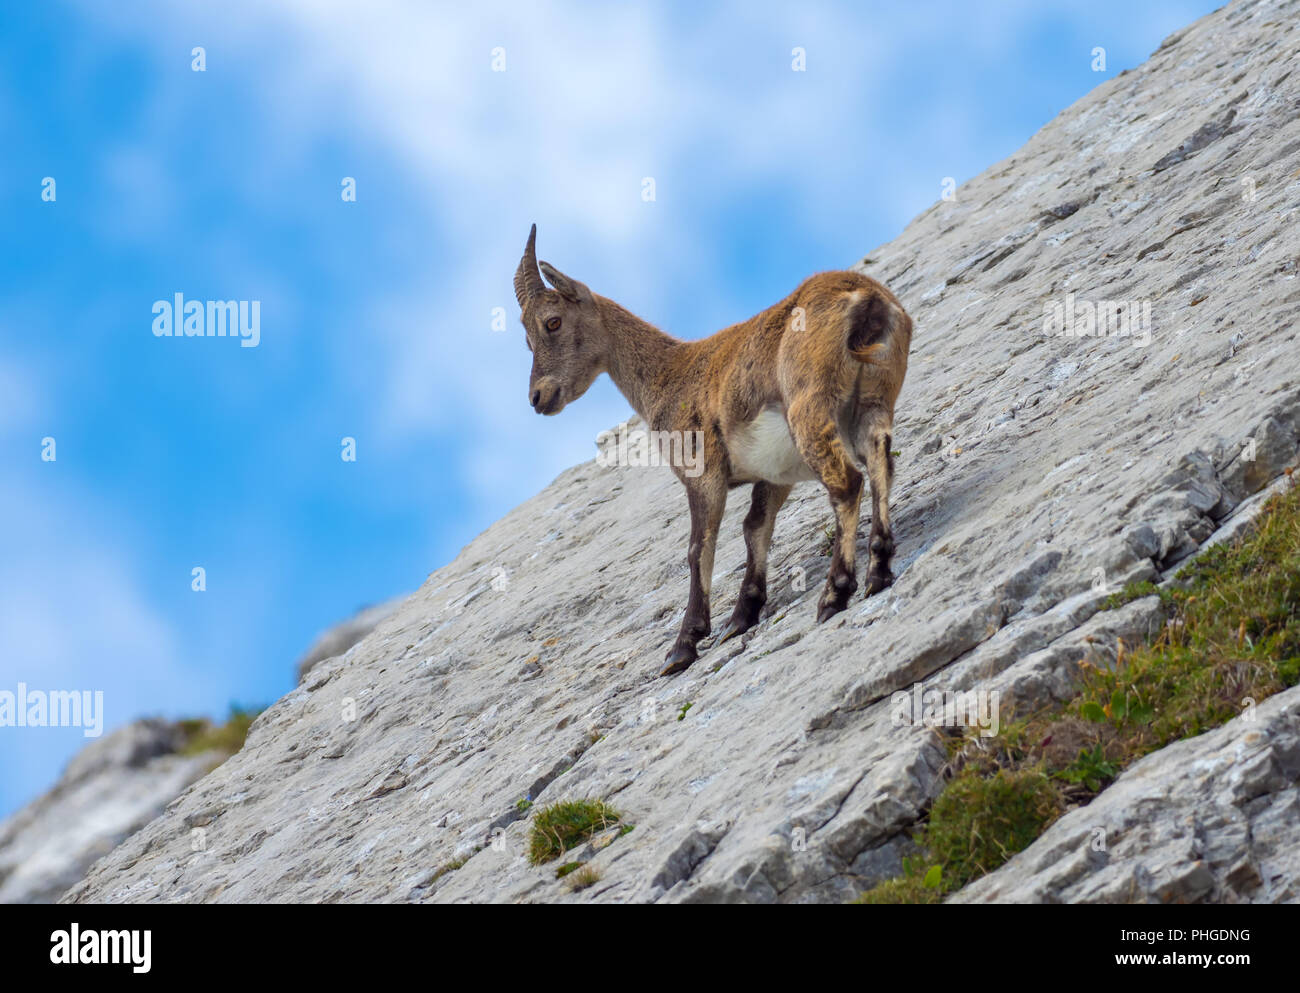 Ibex at Tomlishorn - Stock Image